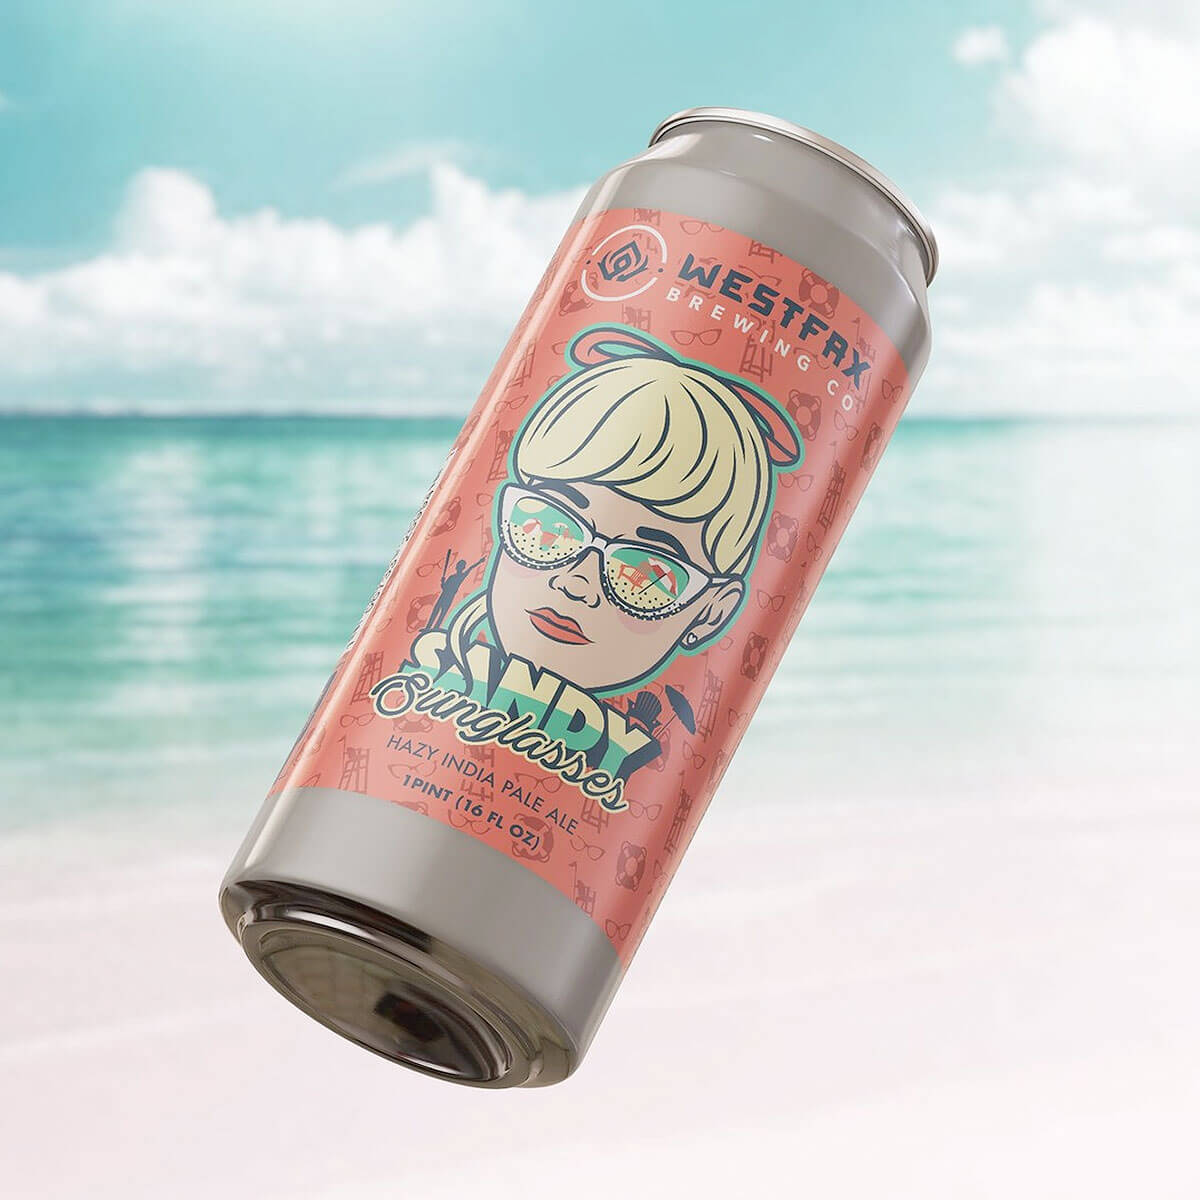 16 oz. can of the Sandy Sunglasses Hazy IPA by WestFax Brewing Company